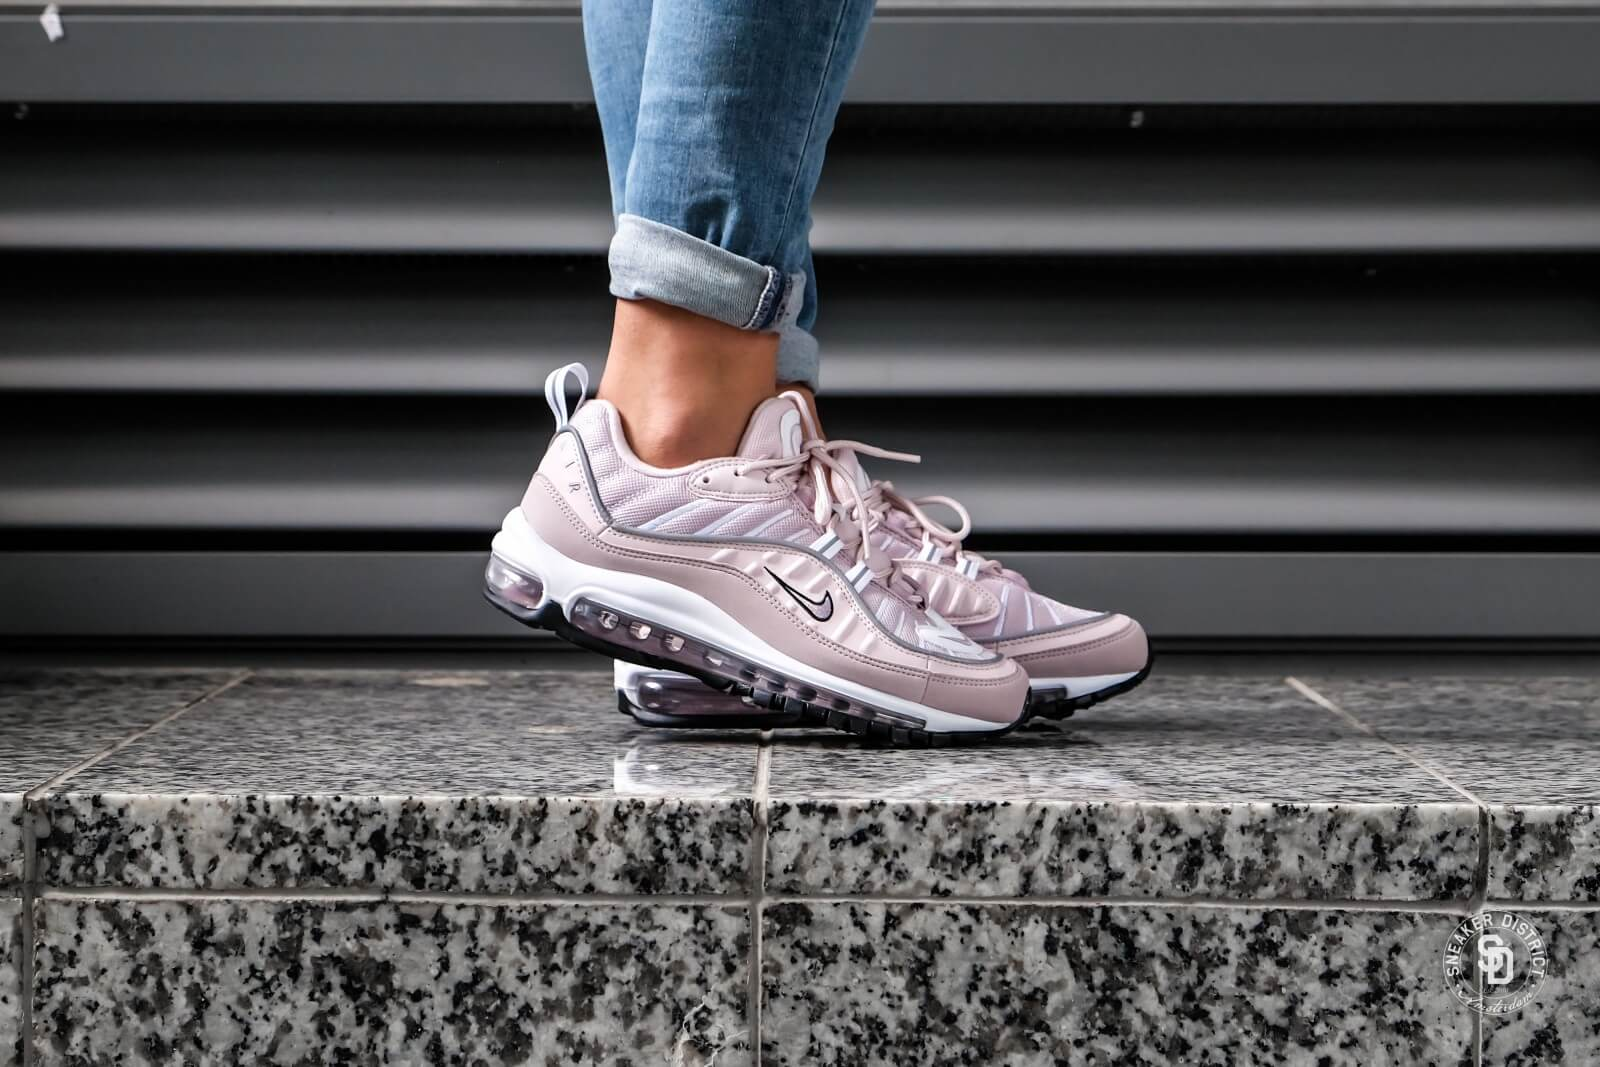 ... official online store 46c6d 22904 nike womens air max 98 barely  roseelemental rose ah6799 60 d1658 07122dcfb3e